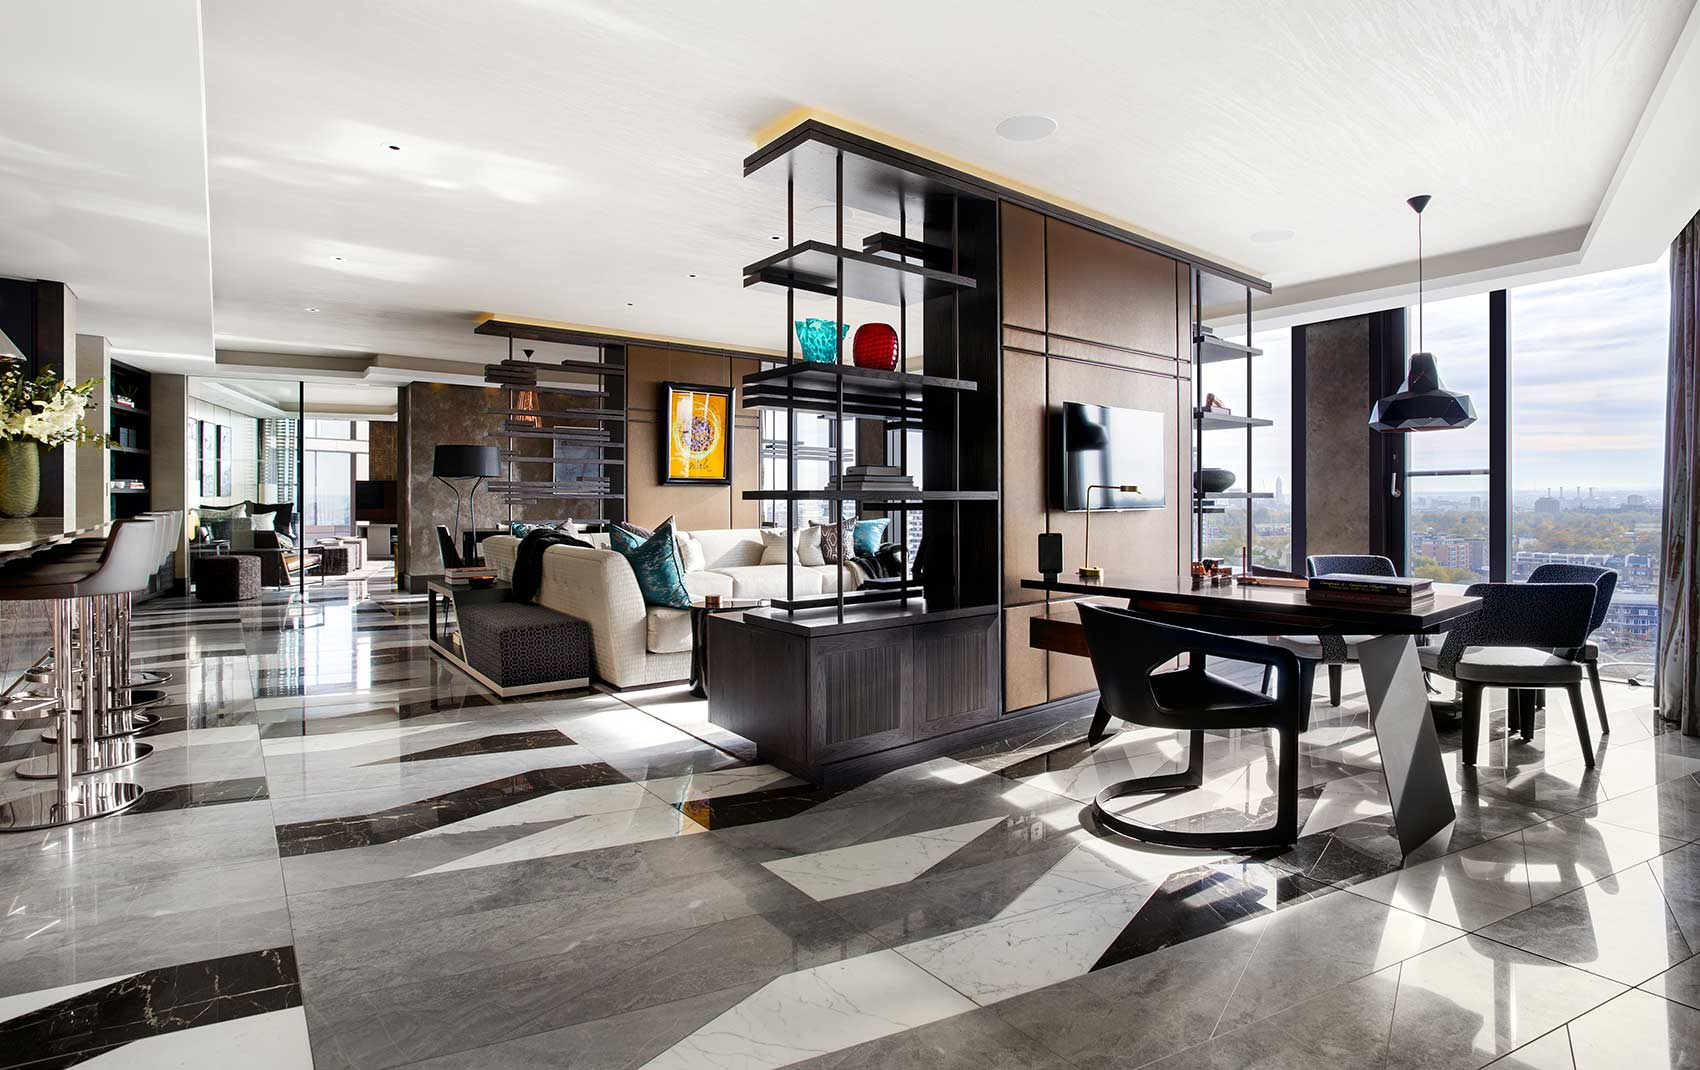 London Luxury Interior Designers UK | Rene Dekker Design